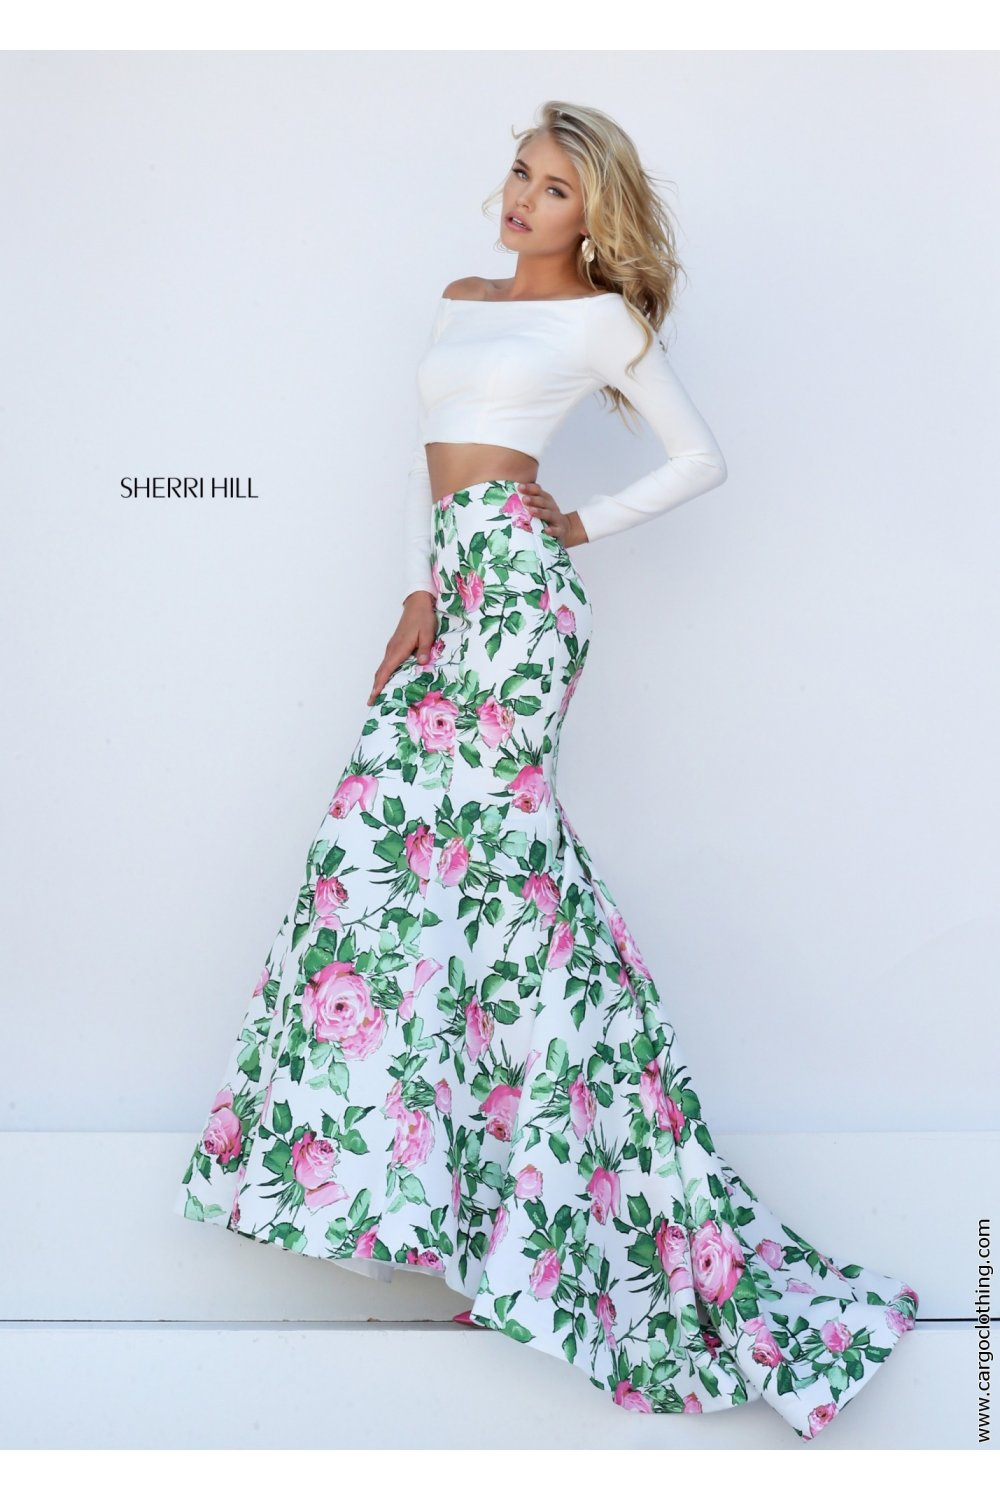 50433 Sherri Hill prom dress at the best price at Cargo Clothing UK